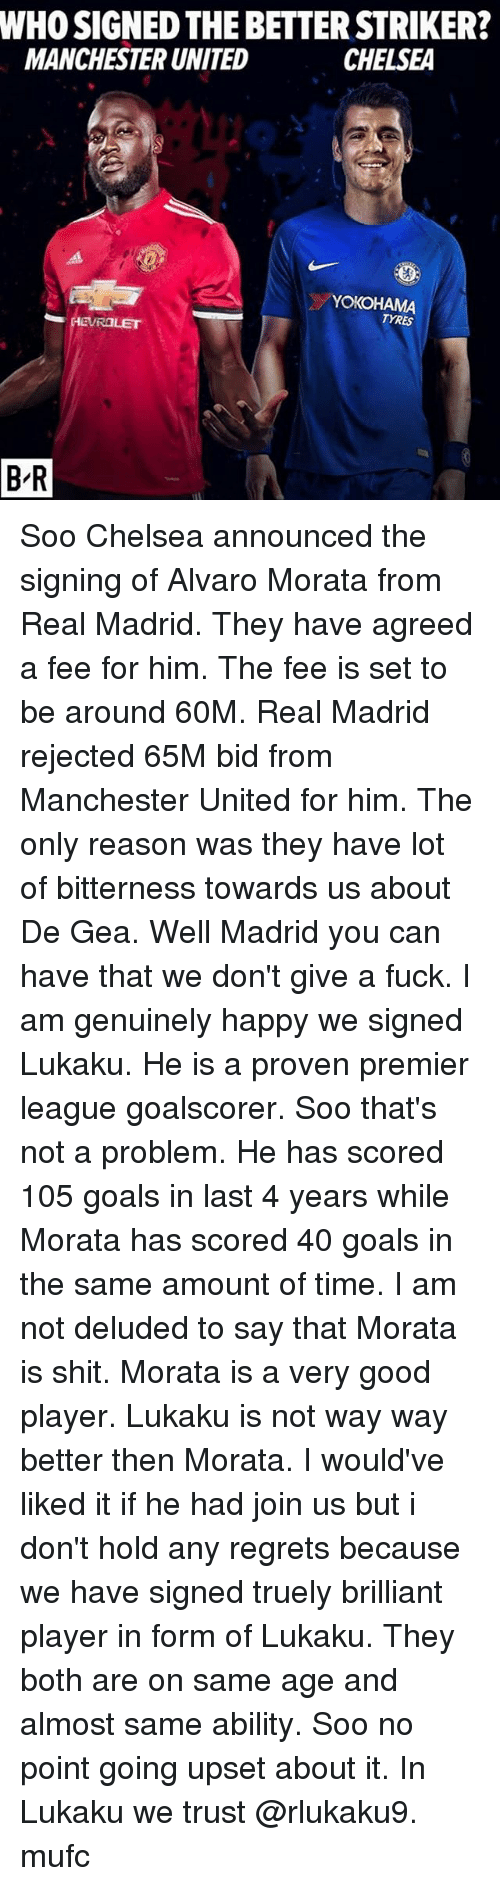 Geas: WHO SIGNED THE BETTER STRIKER?  MANCHESTER UNITED  CHELSEA  YOKOHAMA  TYRES  B-R Soo Chelsea announced the signing of Alvaro Morata from Real Madrid. They have agreed a fee for him. The fee is set to be around 60M. Real Madrid rejected 65M bid from Manchester United for him. The only reason was they have lot of bitterness towards us about De Gea. Well Madrid you can have that we don't give a fuck. I am genuinely happy we signed Lukaku. He is a proven premier league goalscorer. Soo that's not a problem. He has scored 105 goals in last 4 years while Morata has scored 40 goals in the same amount of time. I am not deluded to say that Morata is shit. Morata is a very good player. Lukaku is not way way better then Morata. I would've liked it if he had join us but i don't hold any regrets because we have signed truely brilliant player in form of Lukaku. They both are on same age and almost same ability. Soo no point going upset about it. In Lukaku we trust @rlukaku9. mufc